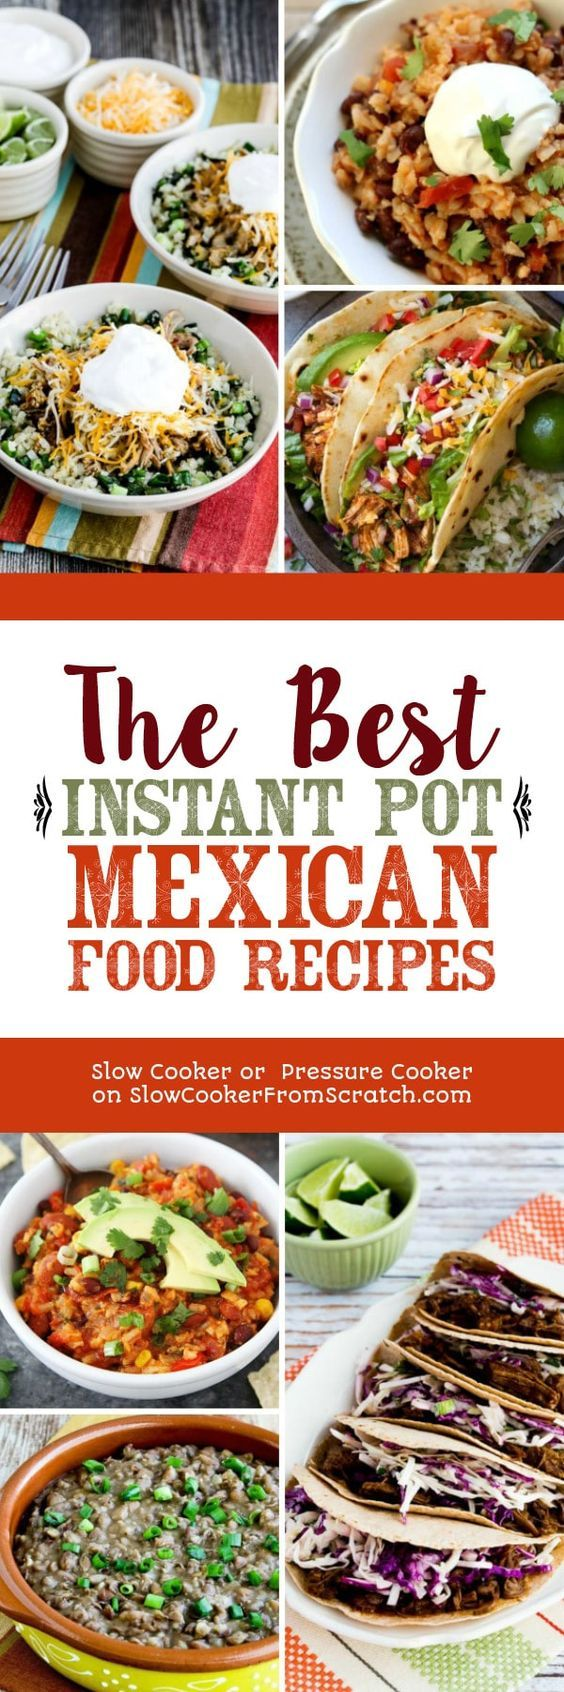 Photo of The BEST Instant Pot Mexican Food Recipes – Slow Cooker or Pressure Cooker